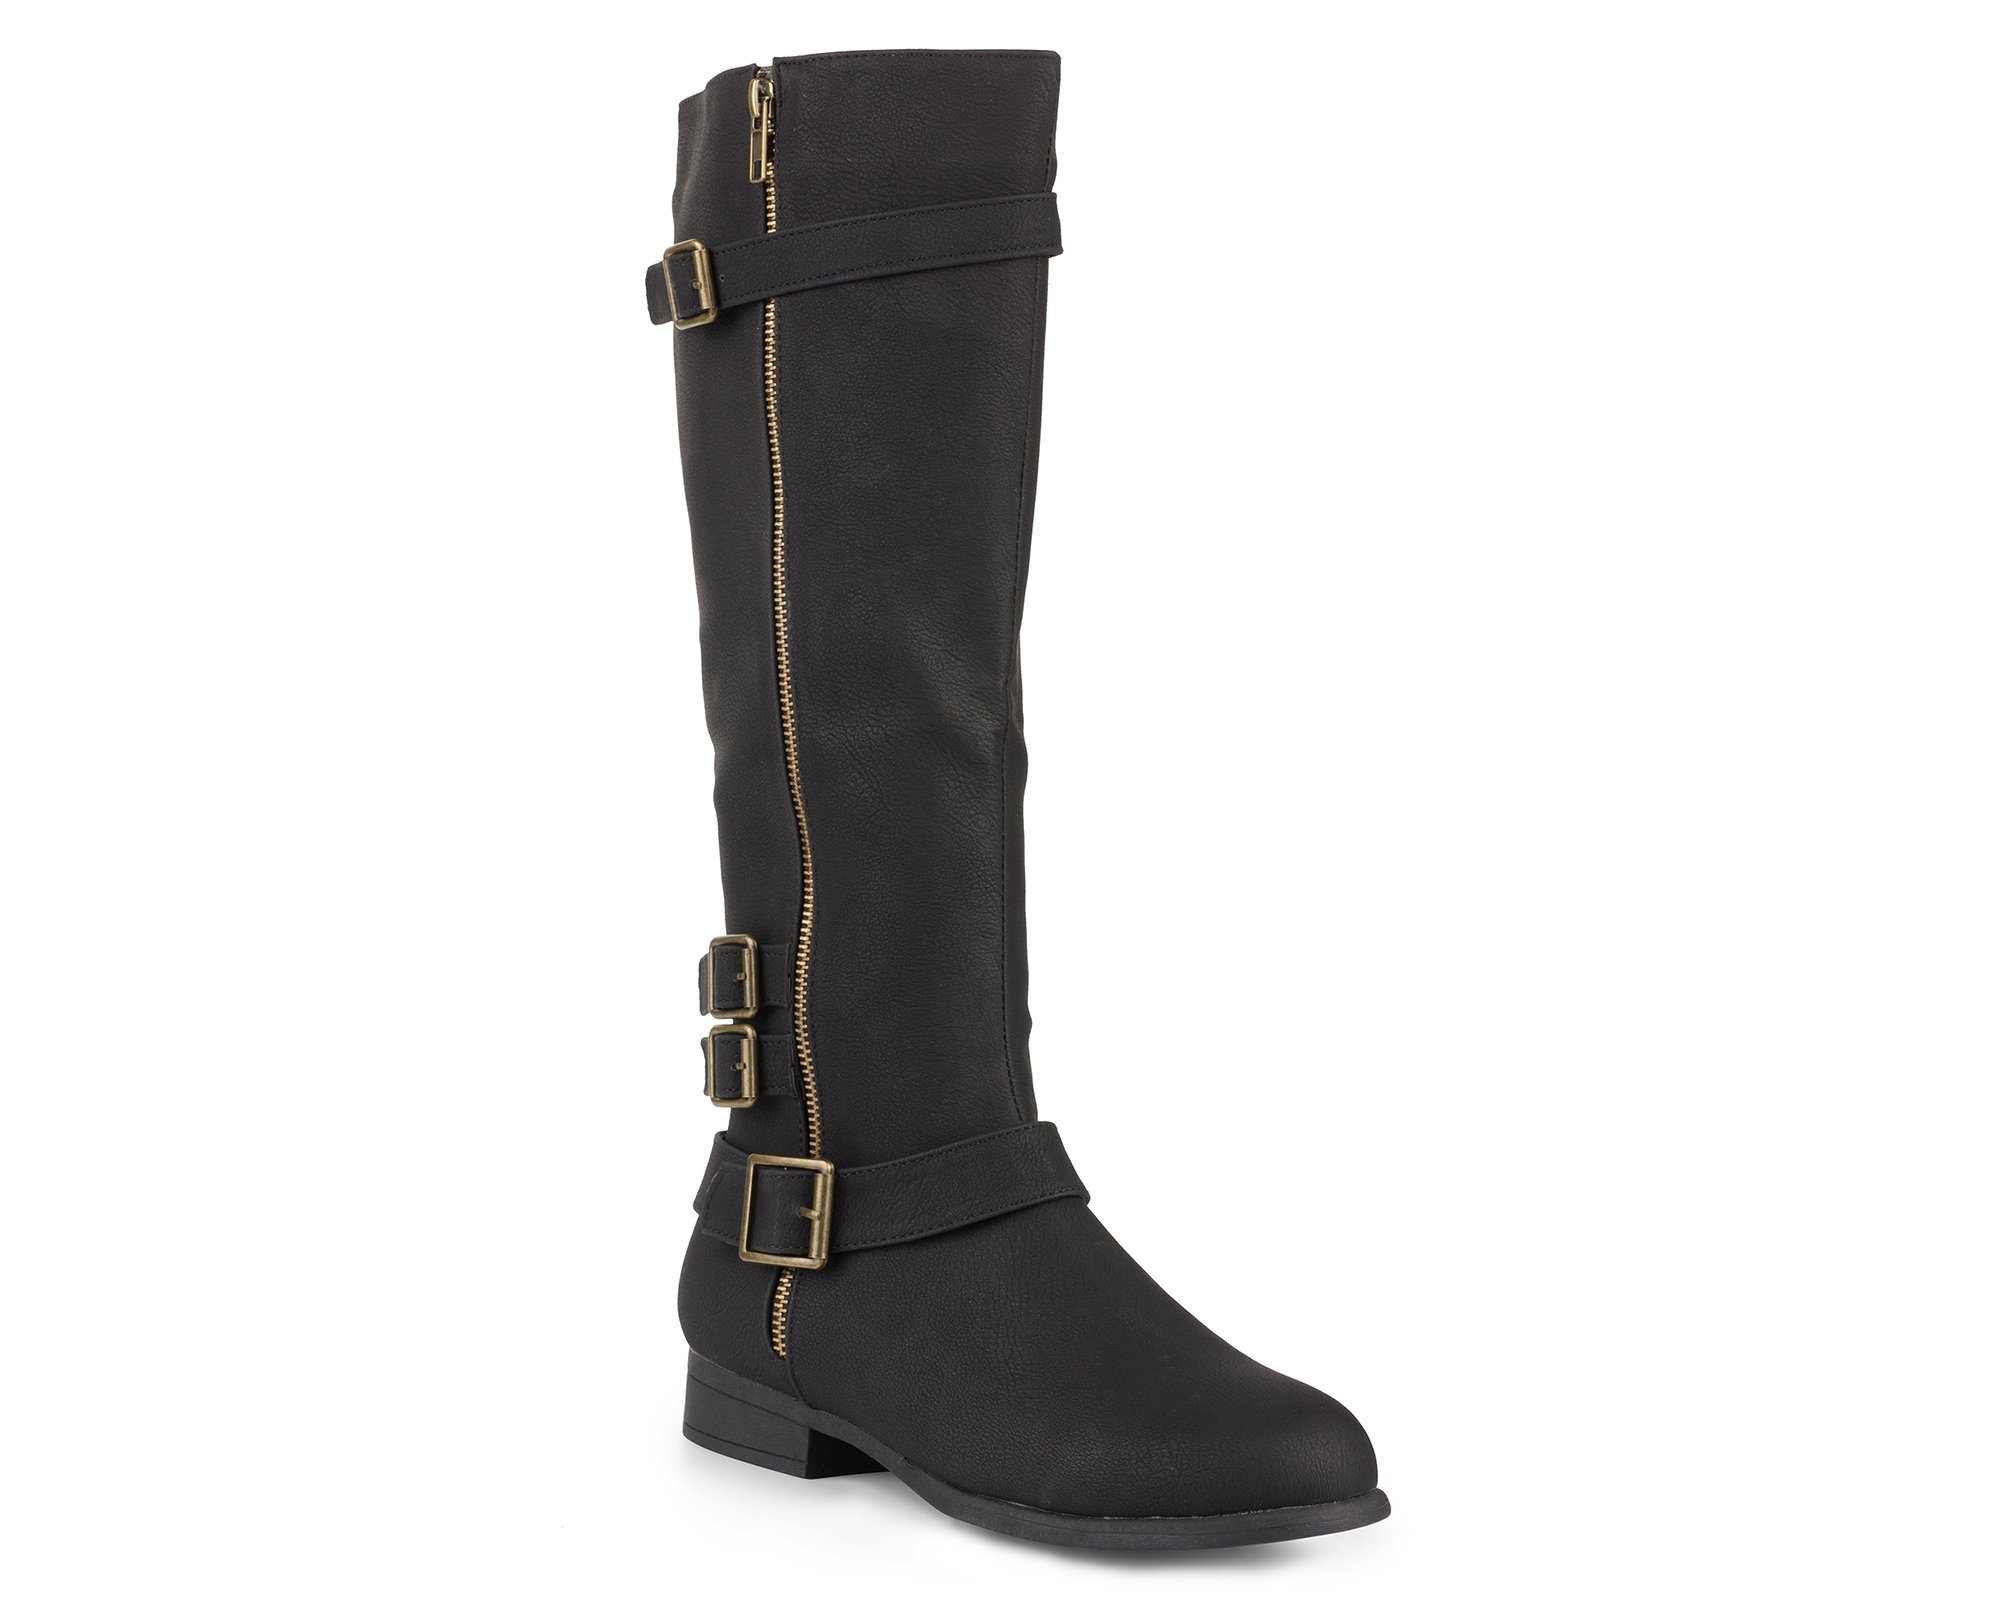 Twisted Women's Noah Knee High Faux Leather Boots with Buckle Straps - NOAH02 Black, Size 9